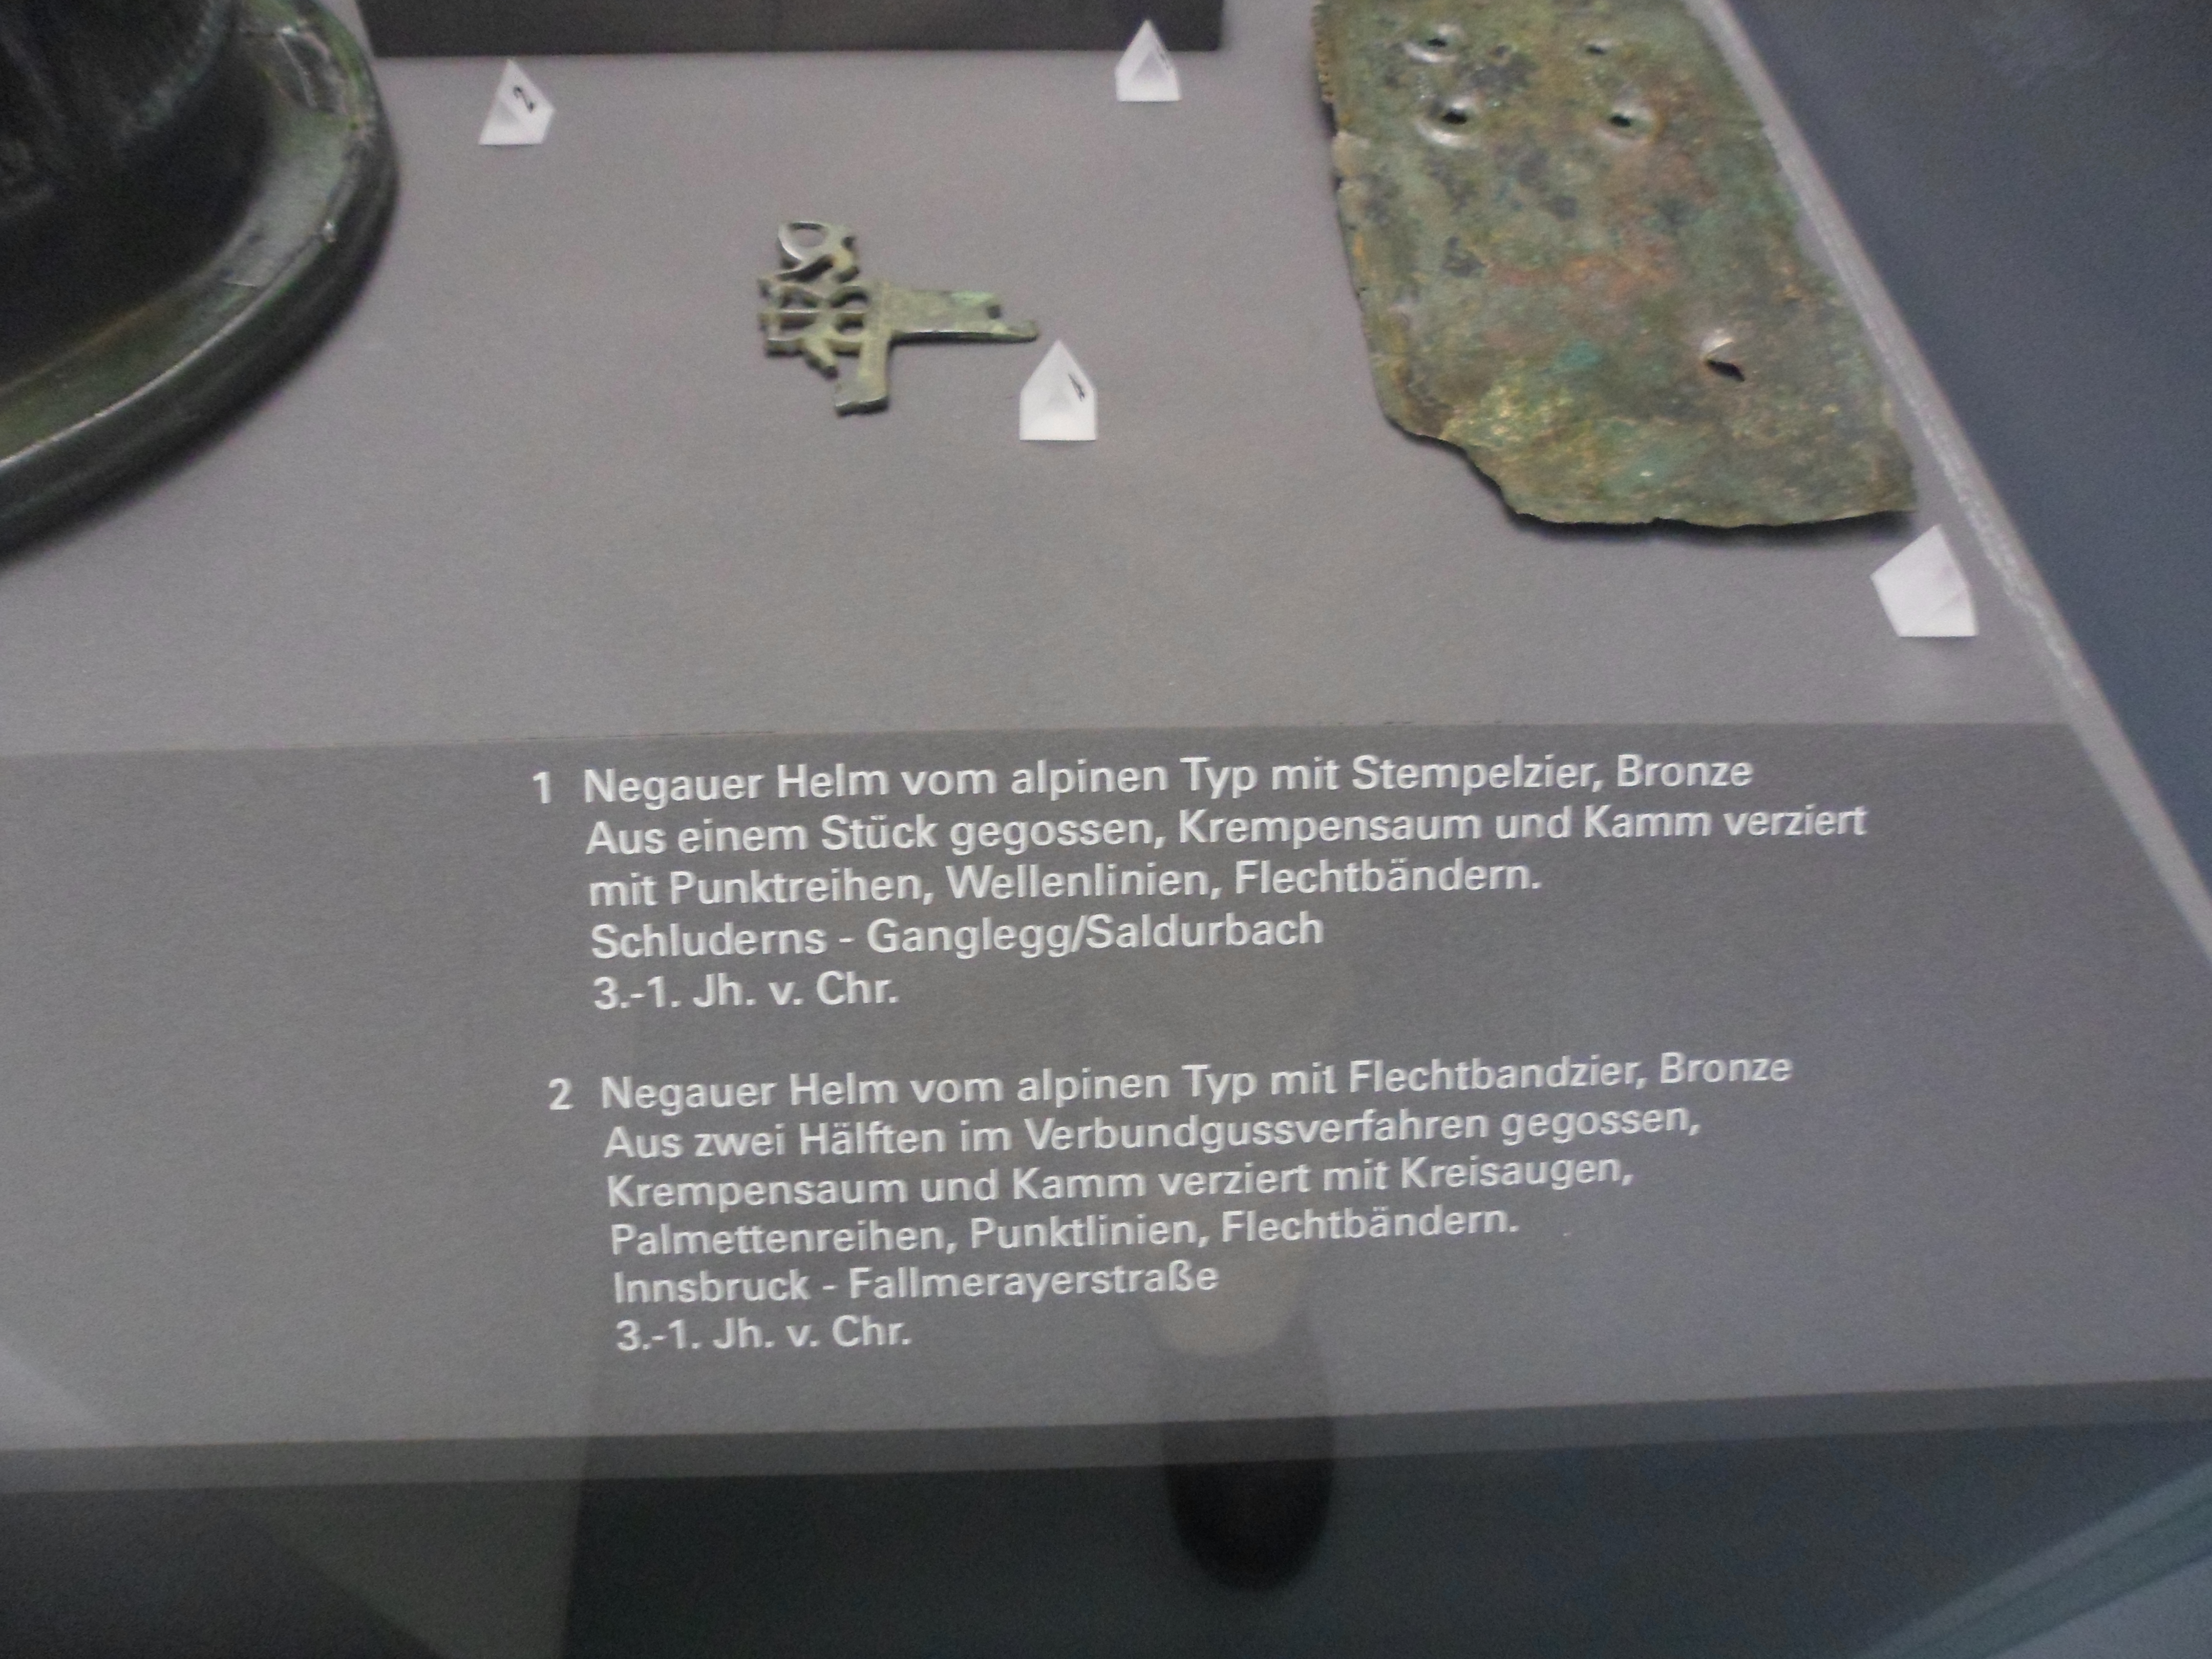 Photo of the museum label.  See caption for an English translation.